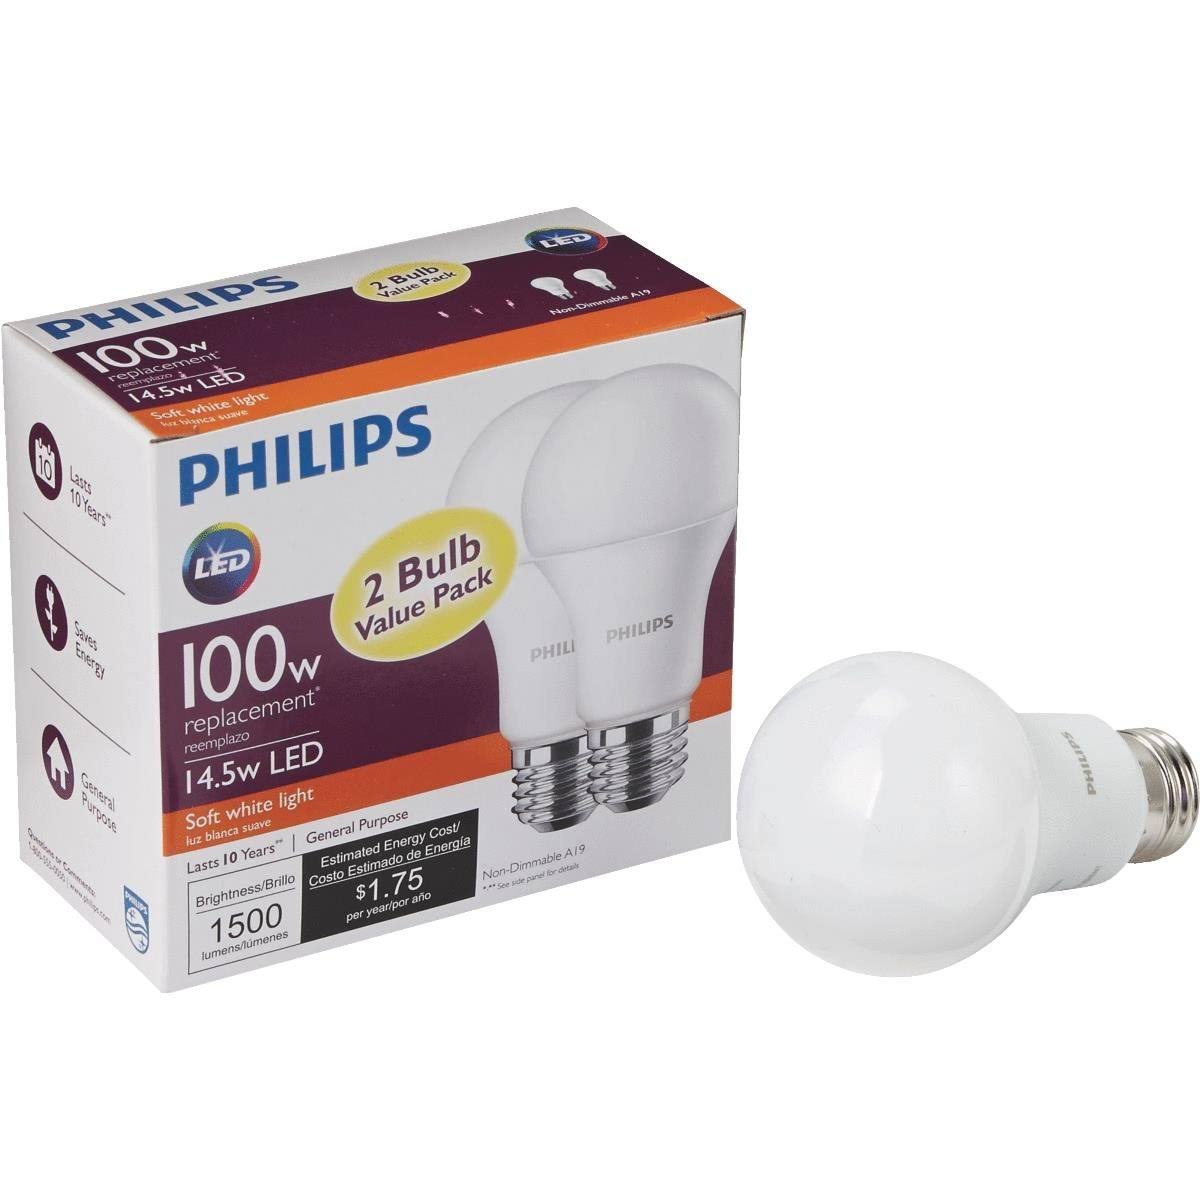 Philips A19 LED Light Bulb - Soft White, 2pk, 100W Equivalent